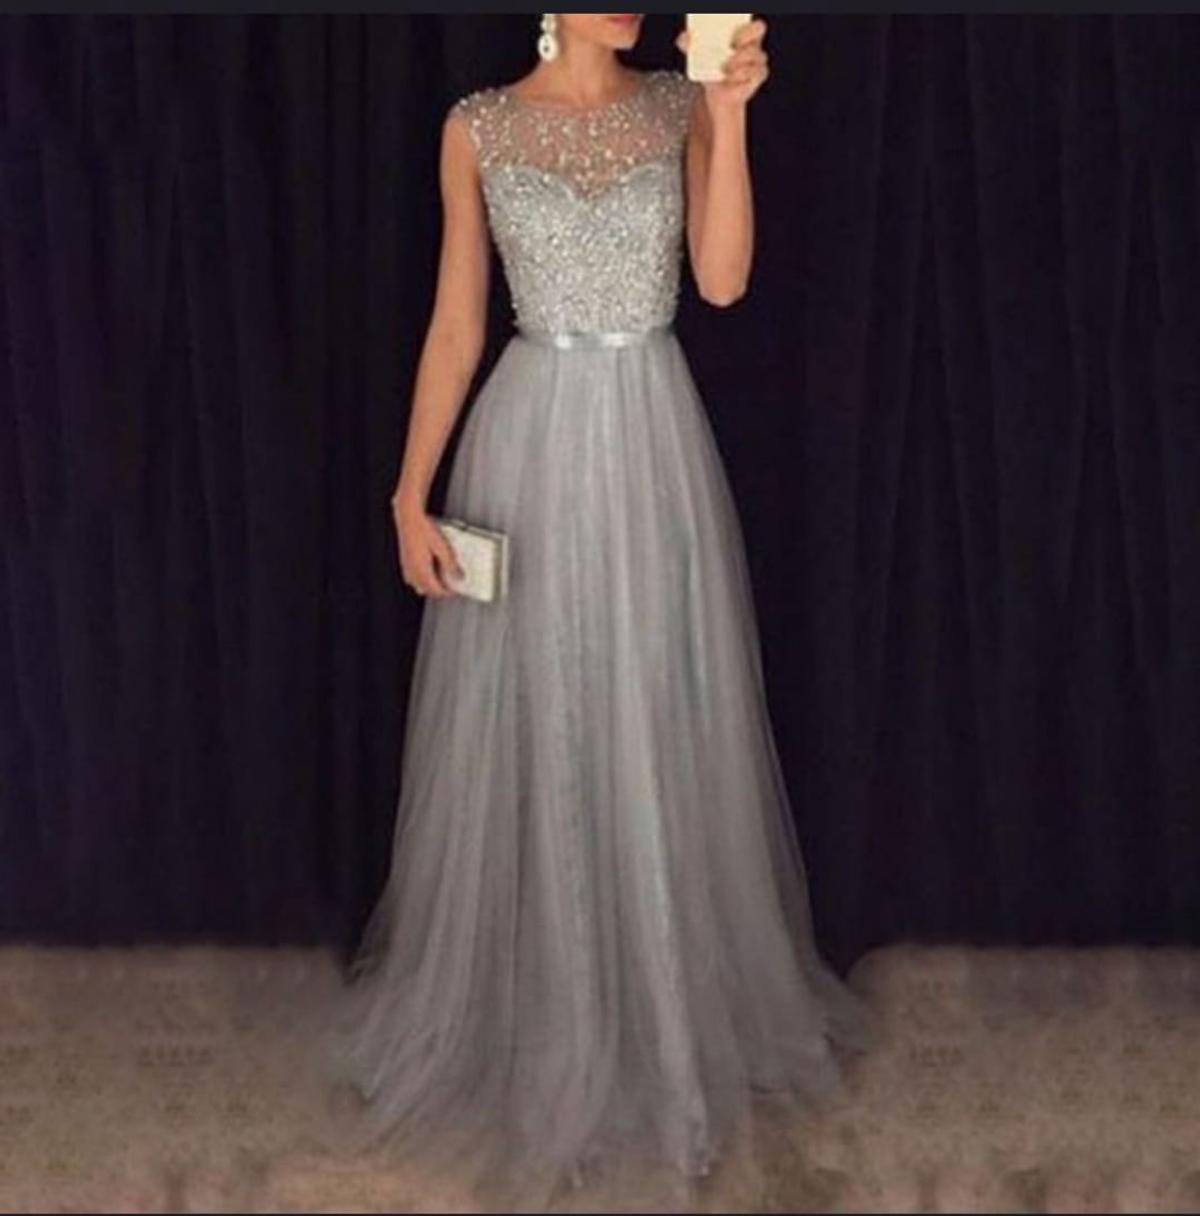 Abendkleid grau /silber in 12 Lampertheim for €12.12 for sale